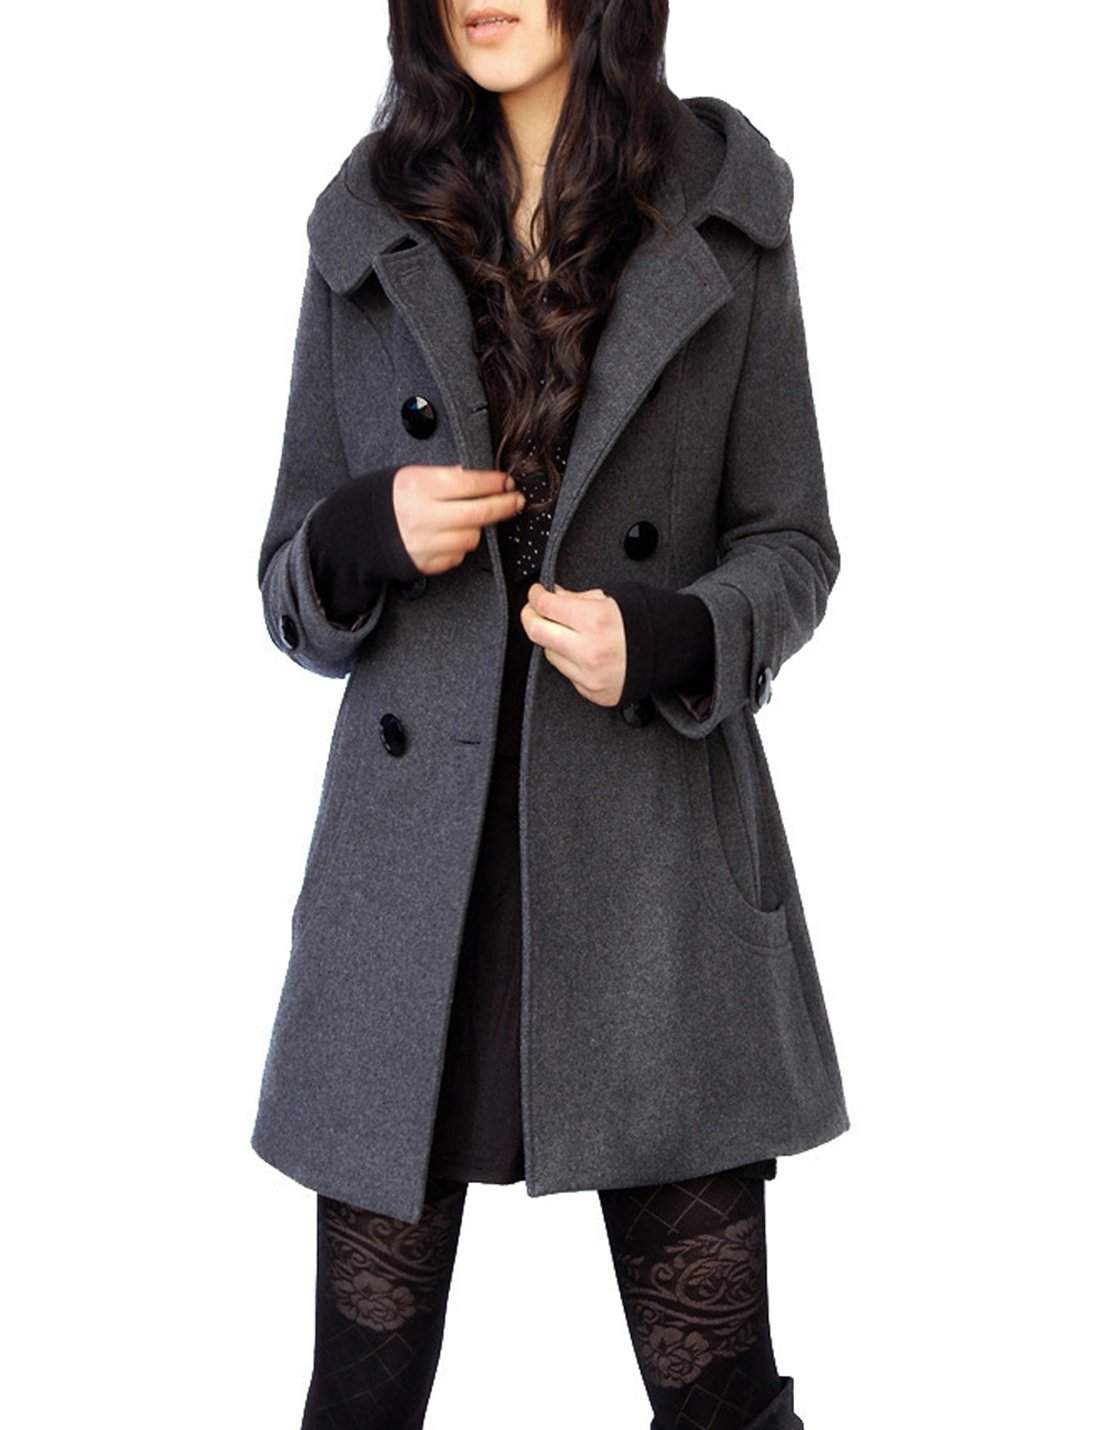 Tanming Women's Winter Double Breasted Wool Blend Long Pea Coat with Hood (X-Large, Grey)